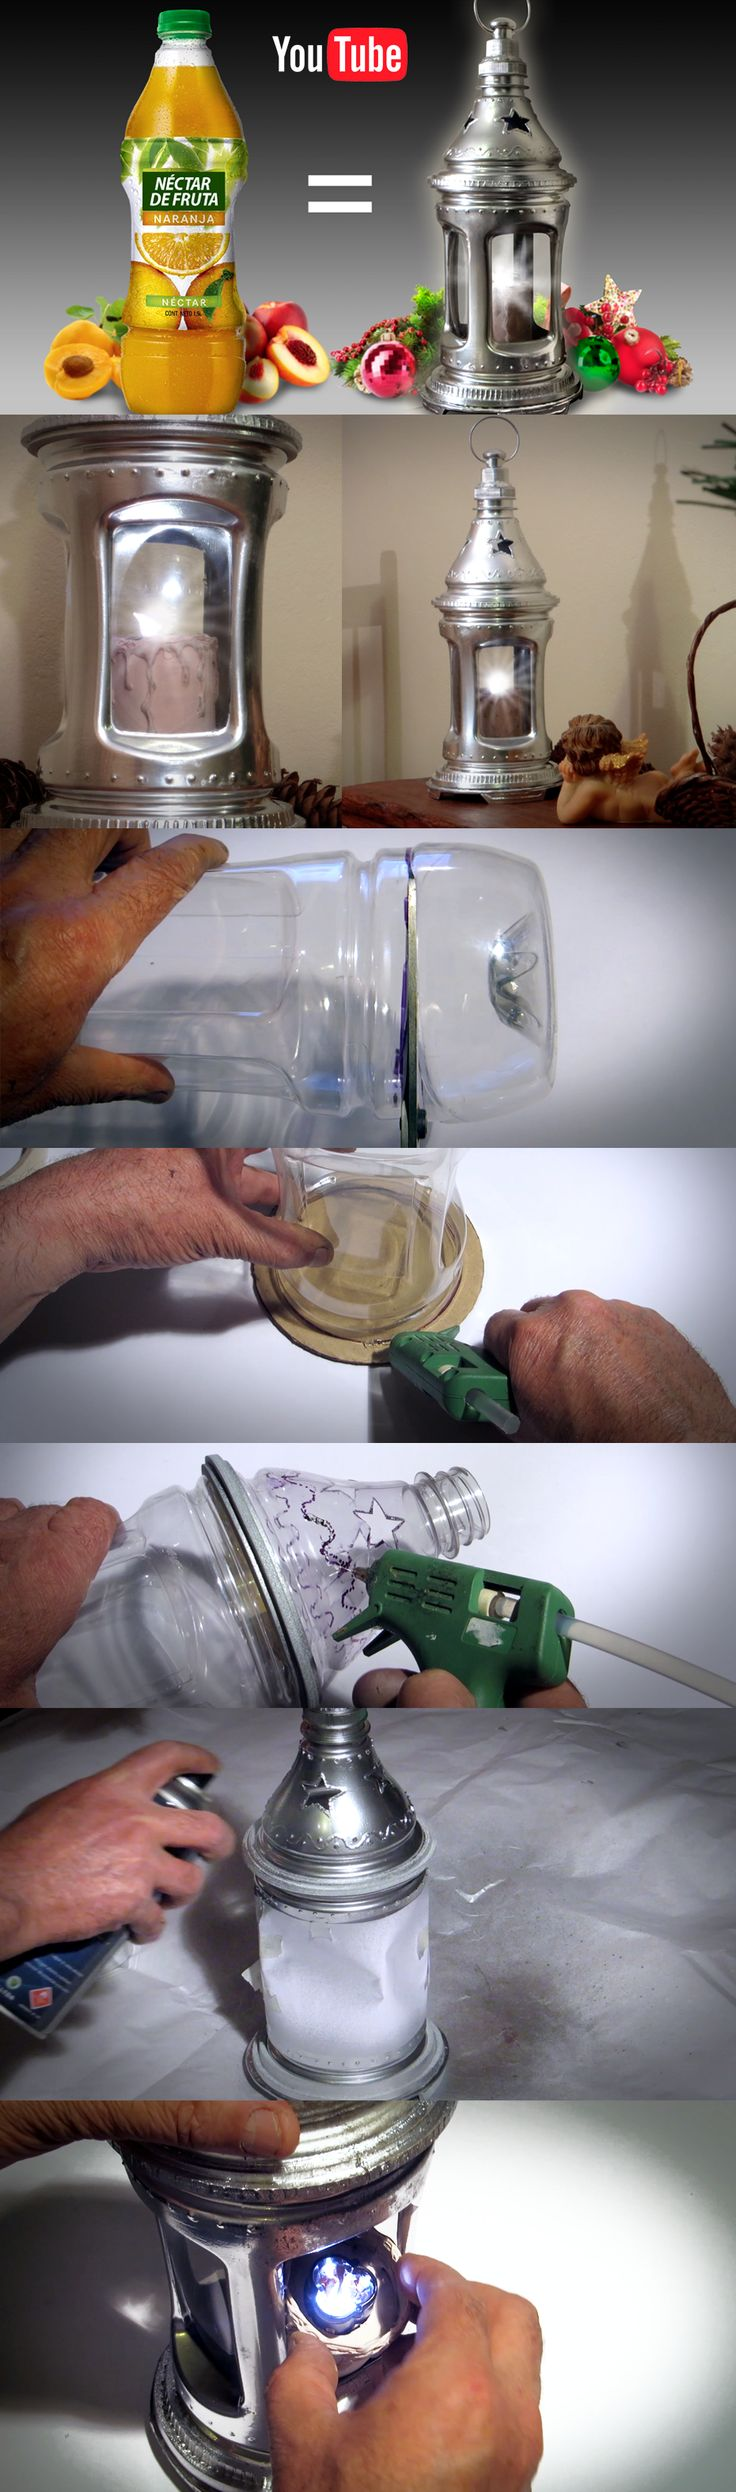 344 best Do it recycling images on Pinterest | Sustainability ...